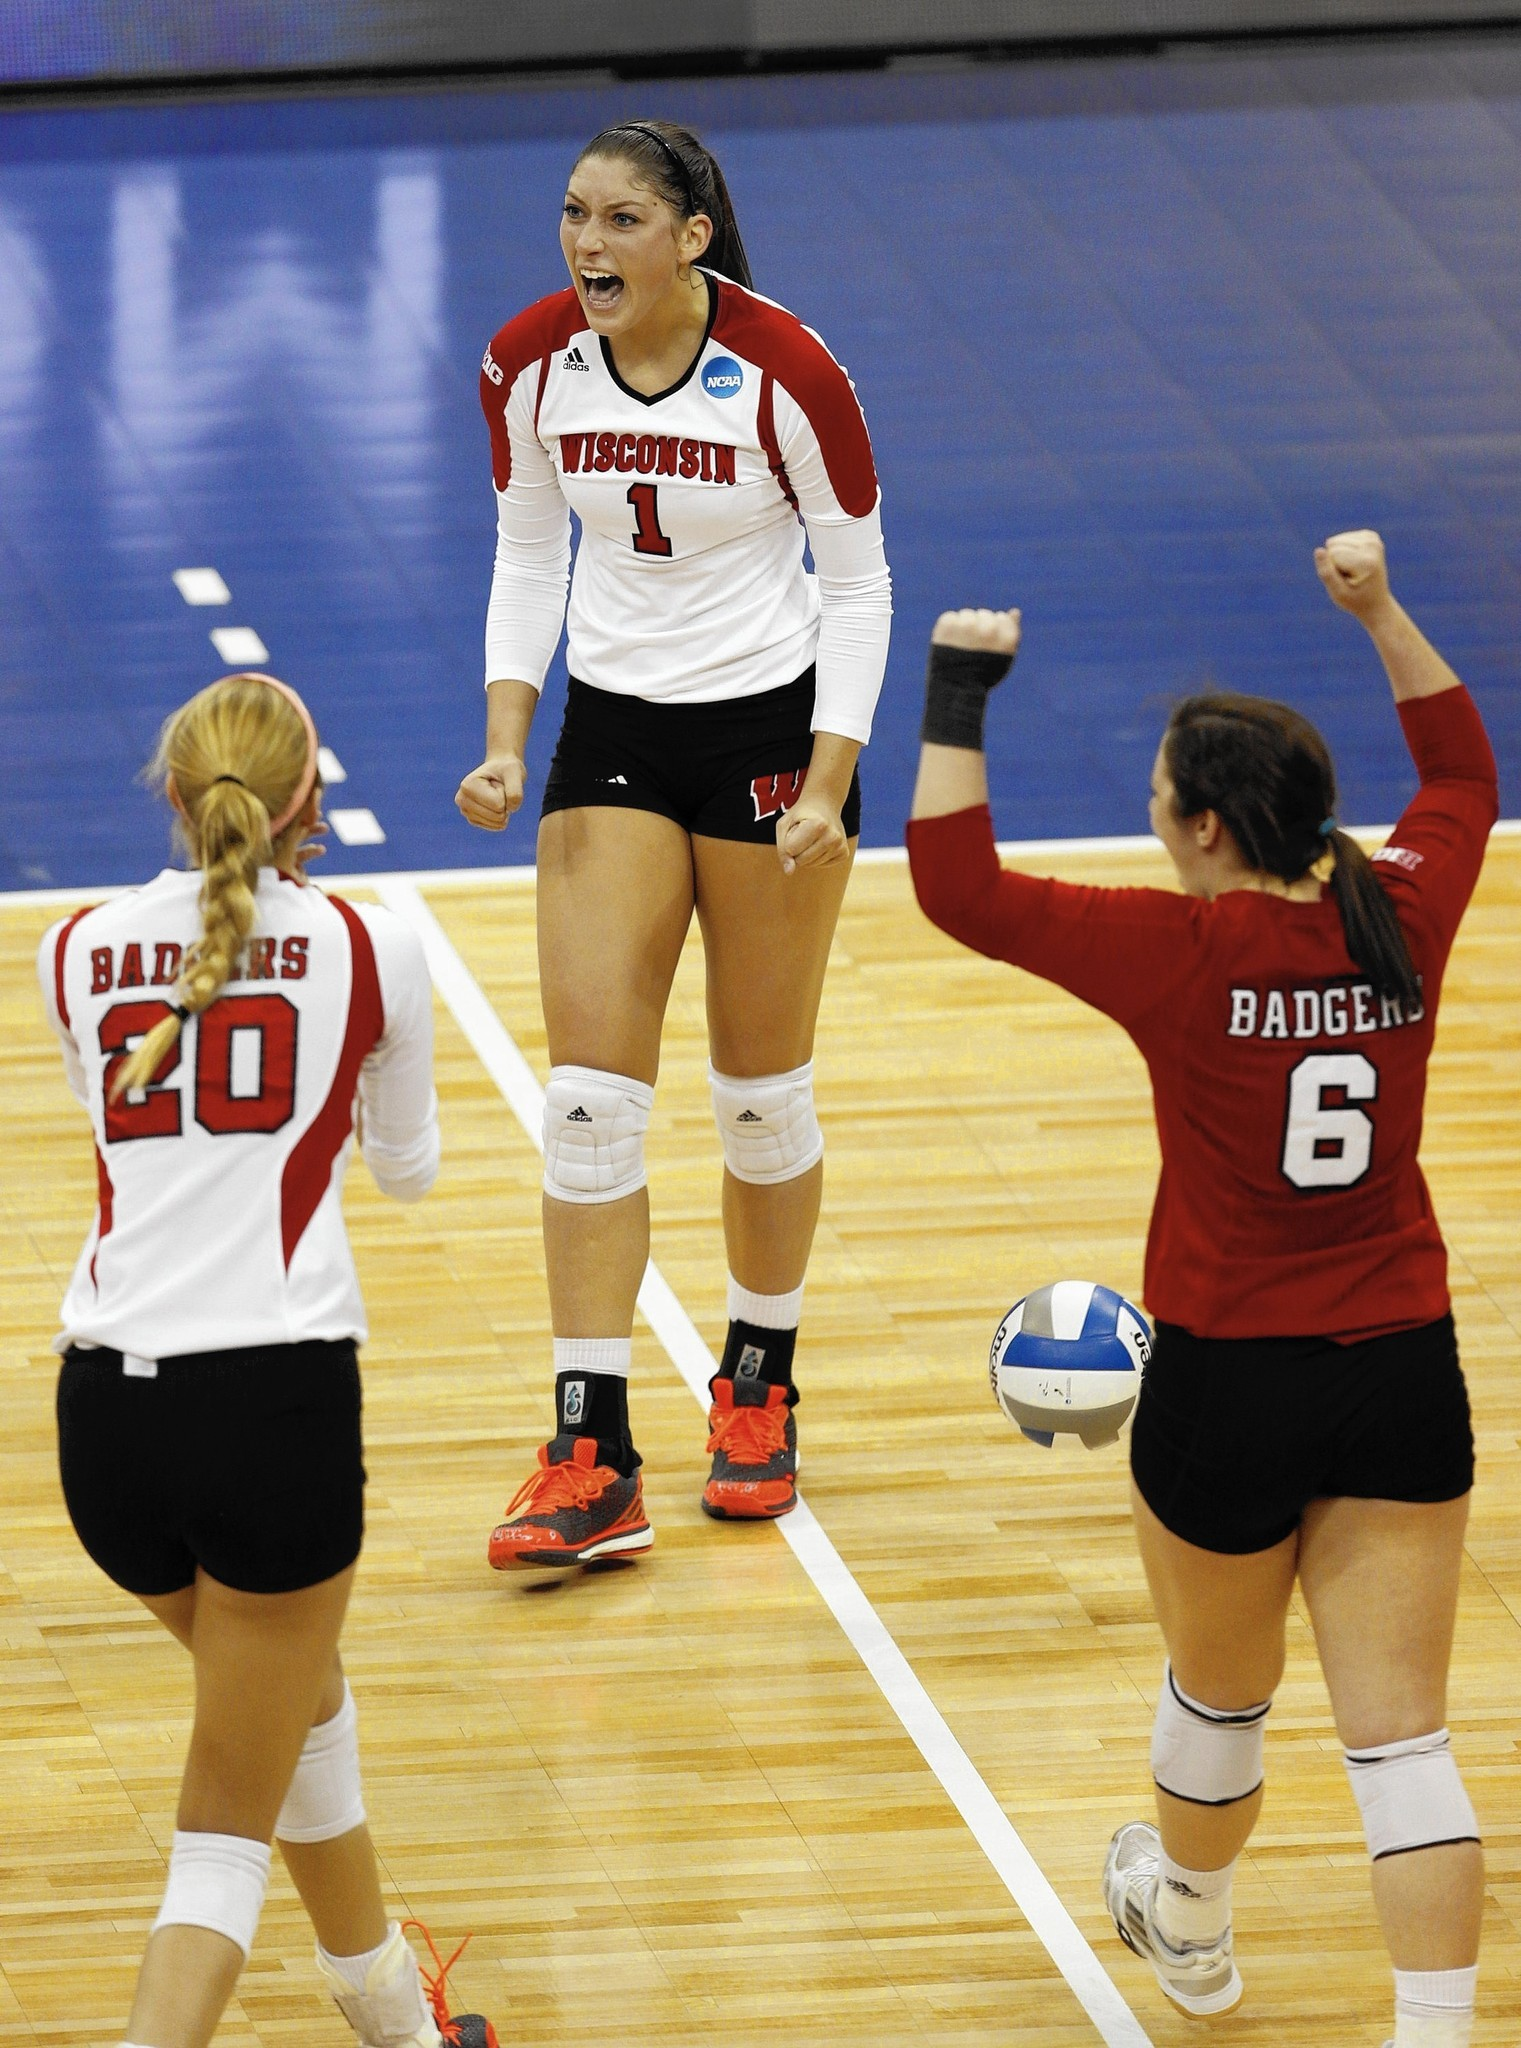 Three-time volleyball All-American Lauren Carlini eyes national title